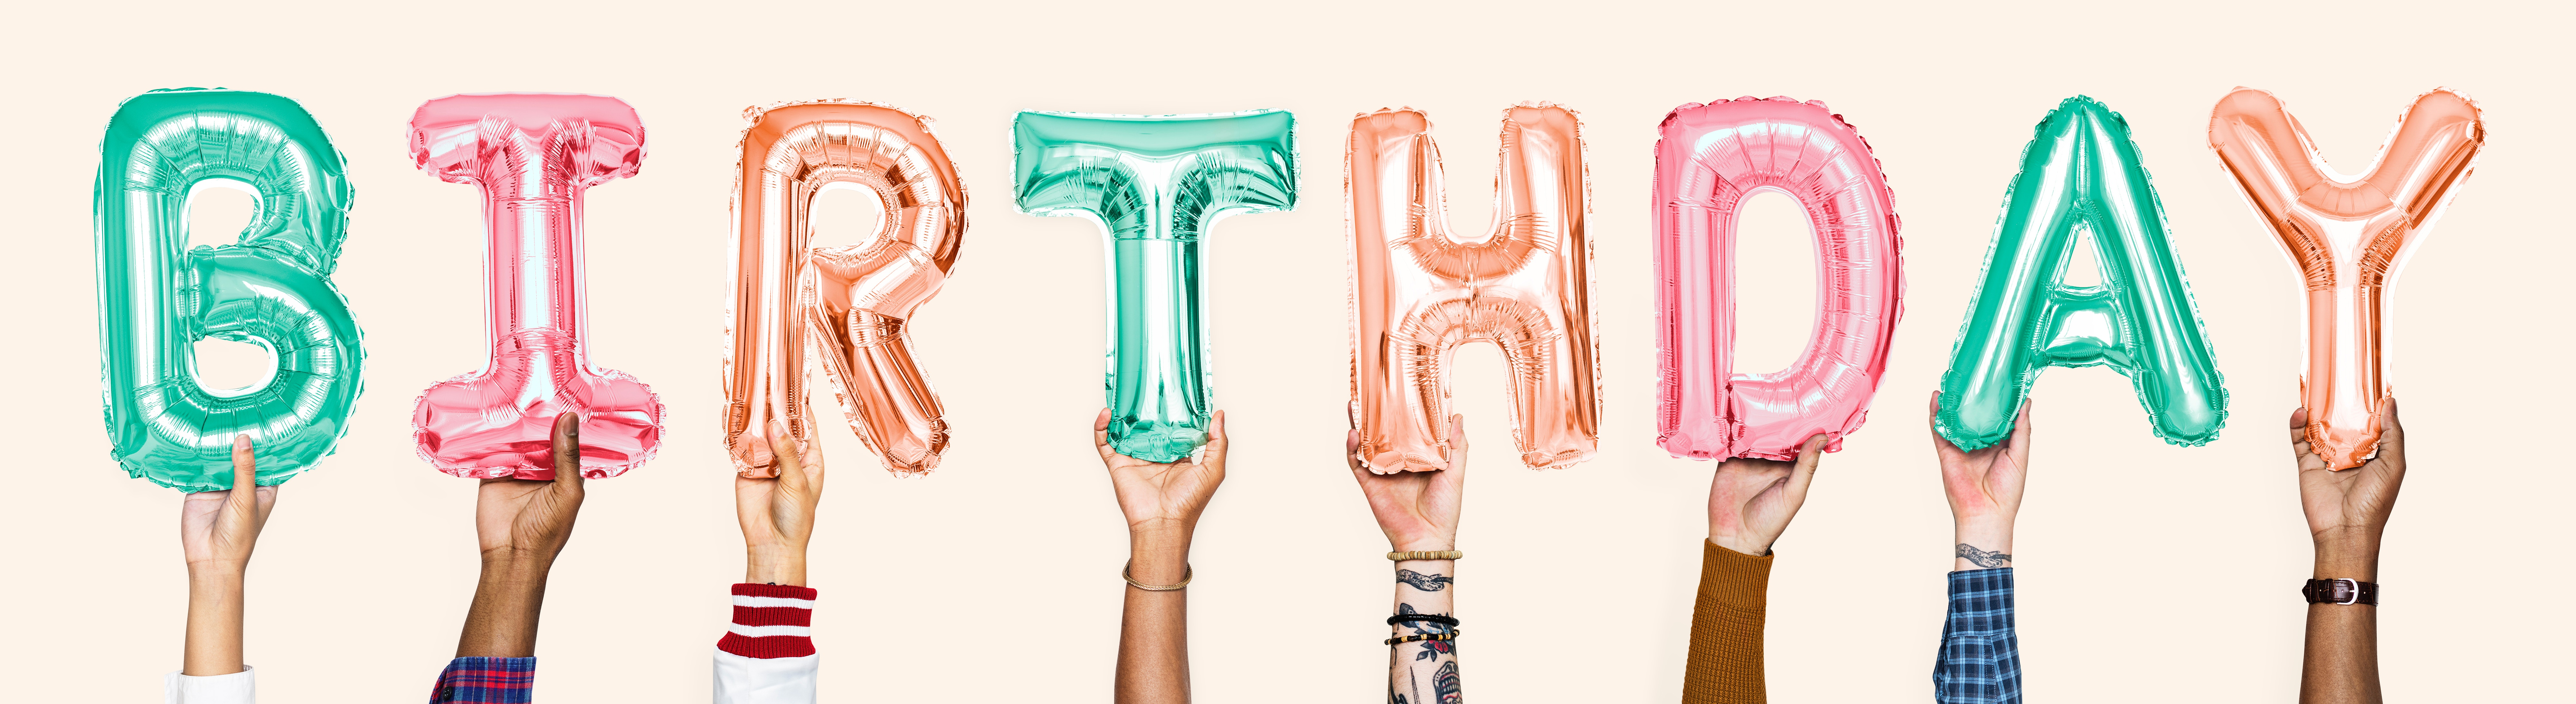 hands holding up balloons that spell out 'birthday'